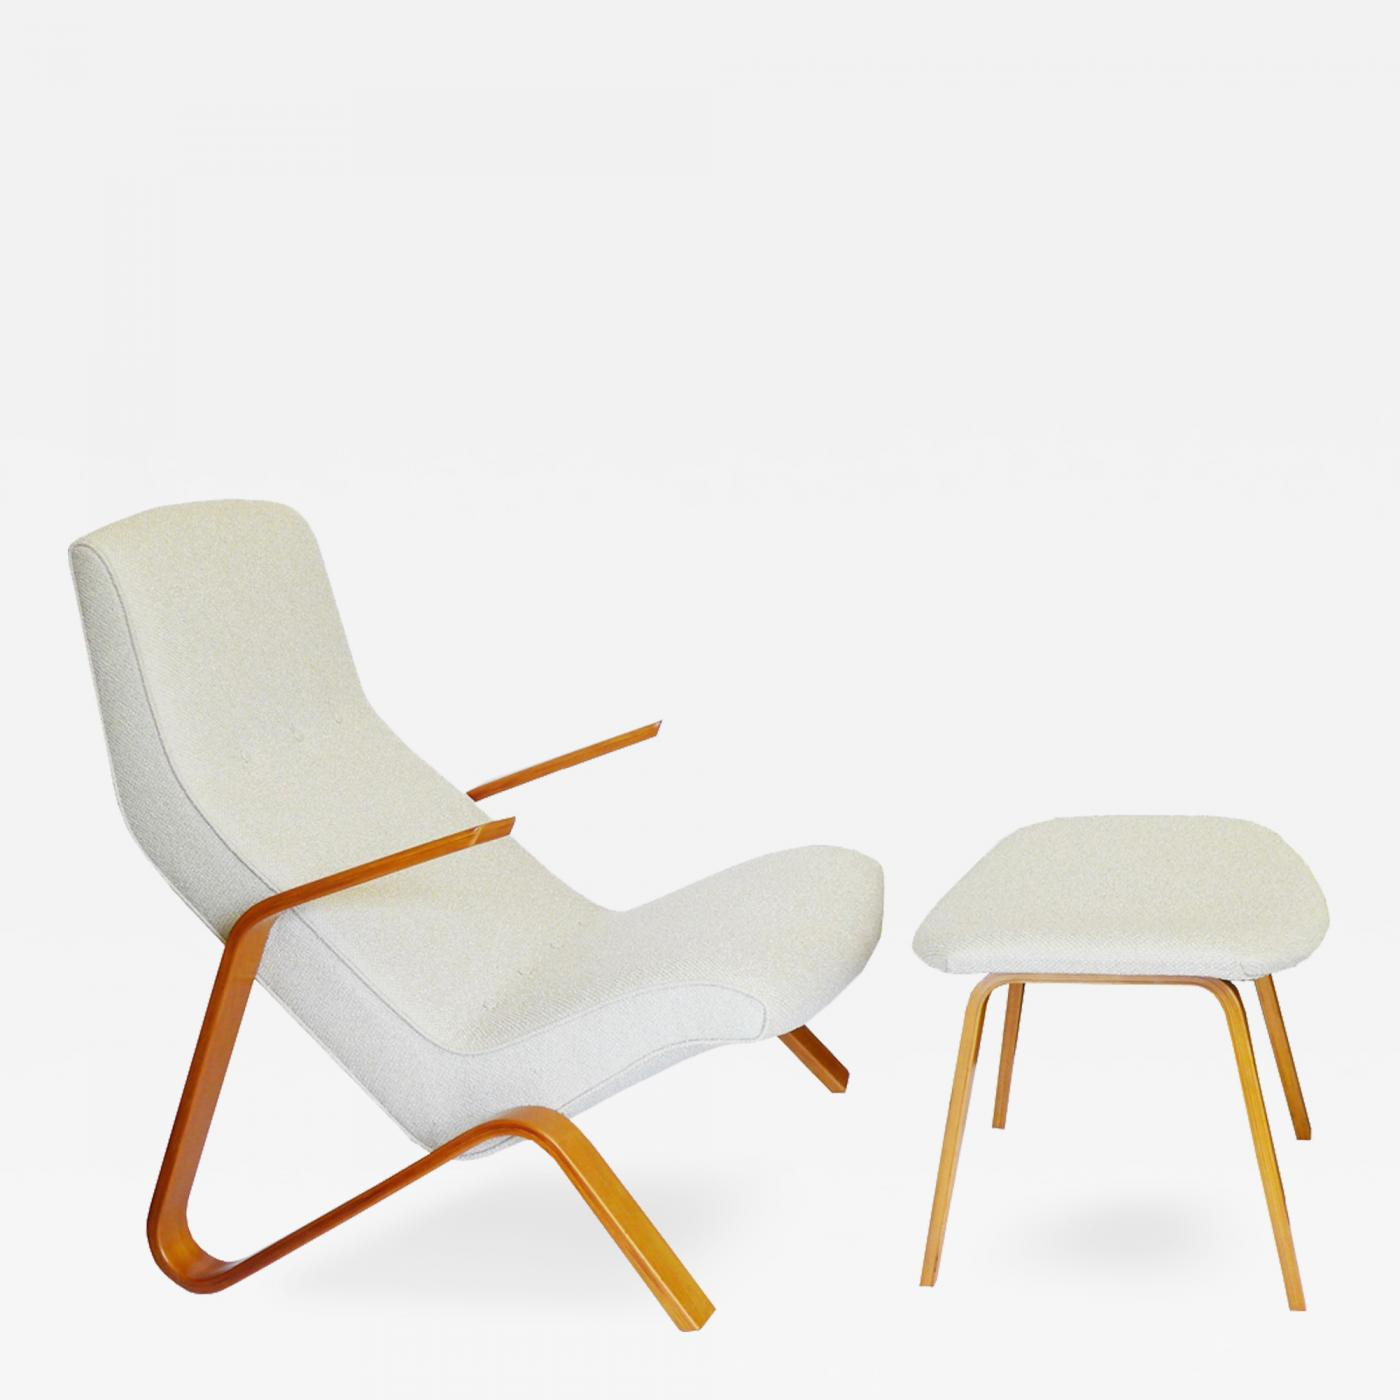 Eero saarinen early eero saarinen grasshopper chair for Knoll associates